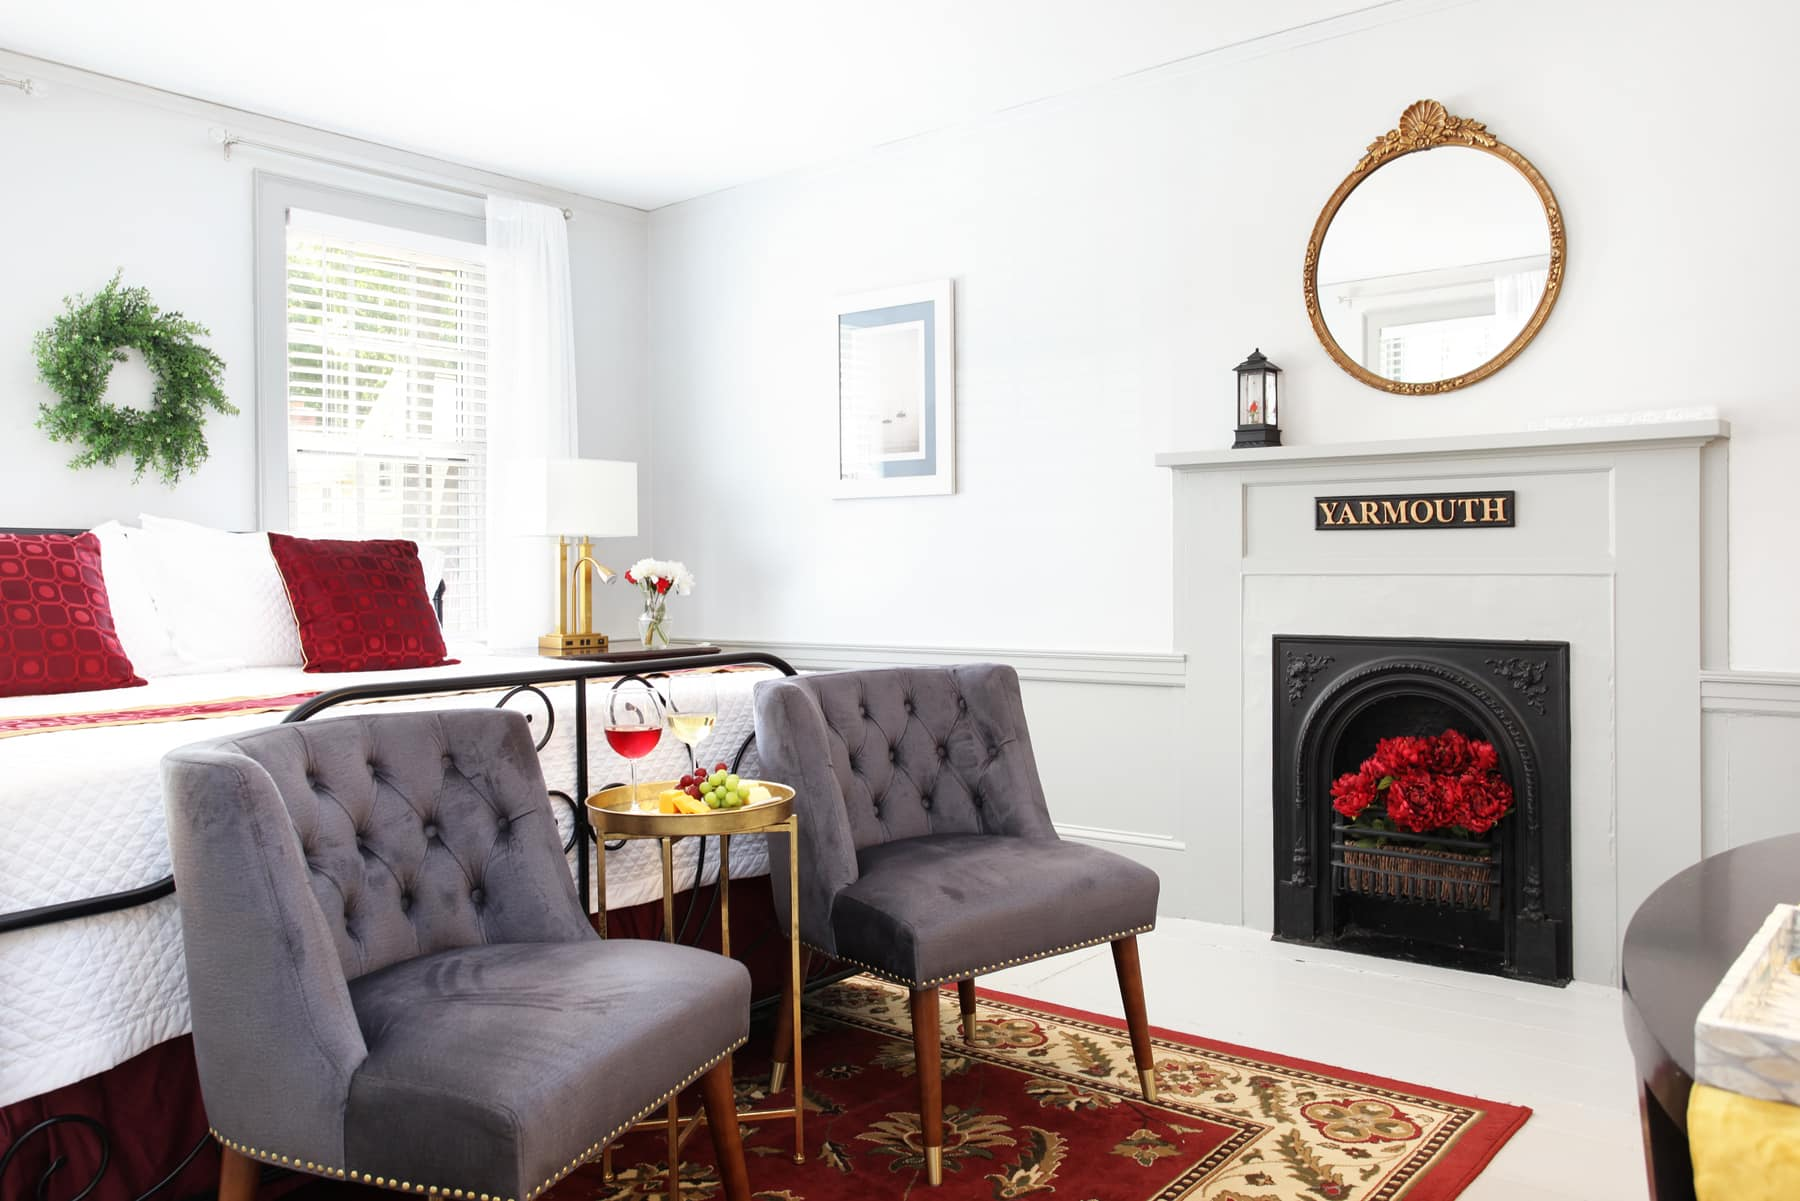 Bedroom with white bedding and red blanket, red upholstered chair, and red and gold rug